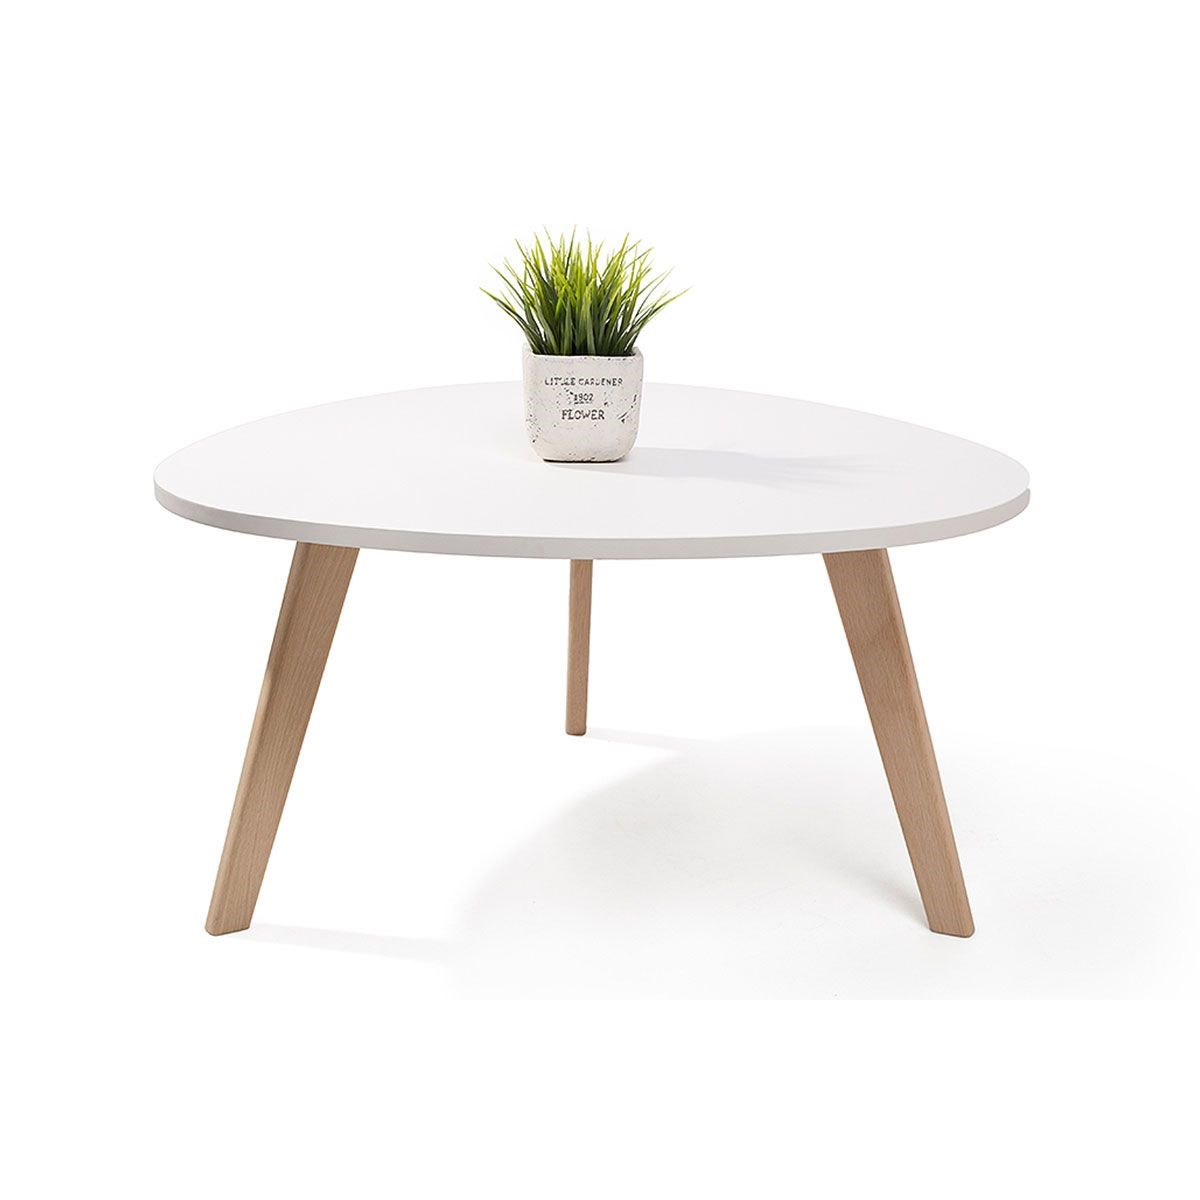 Table basse scandinave alta - Table basse scandinave gigogne ...